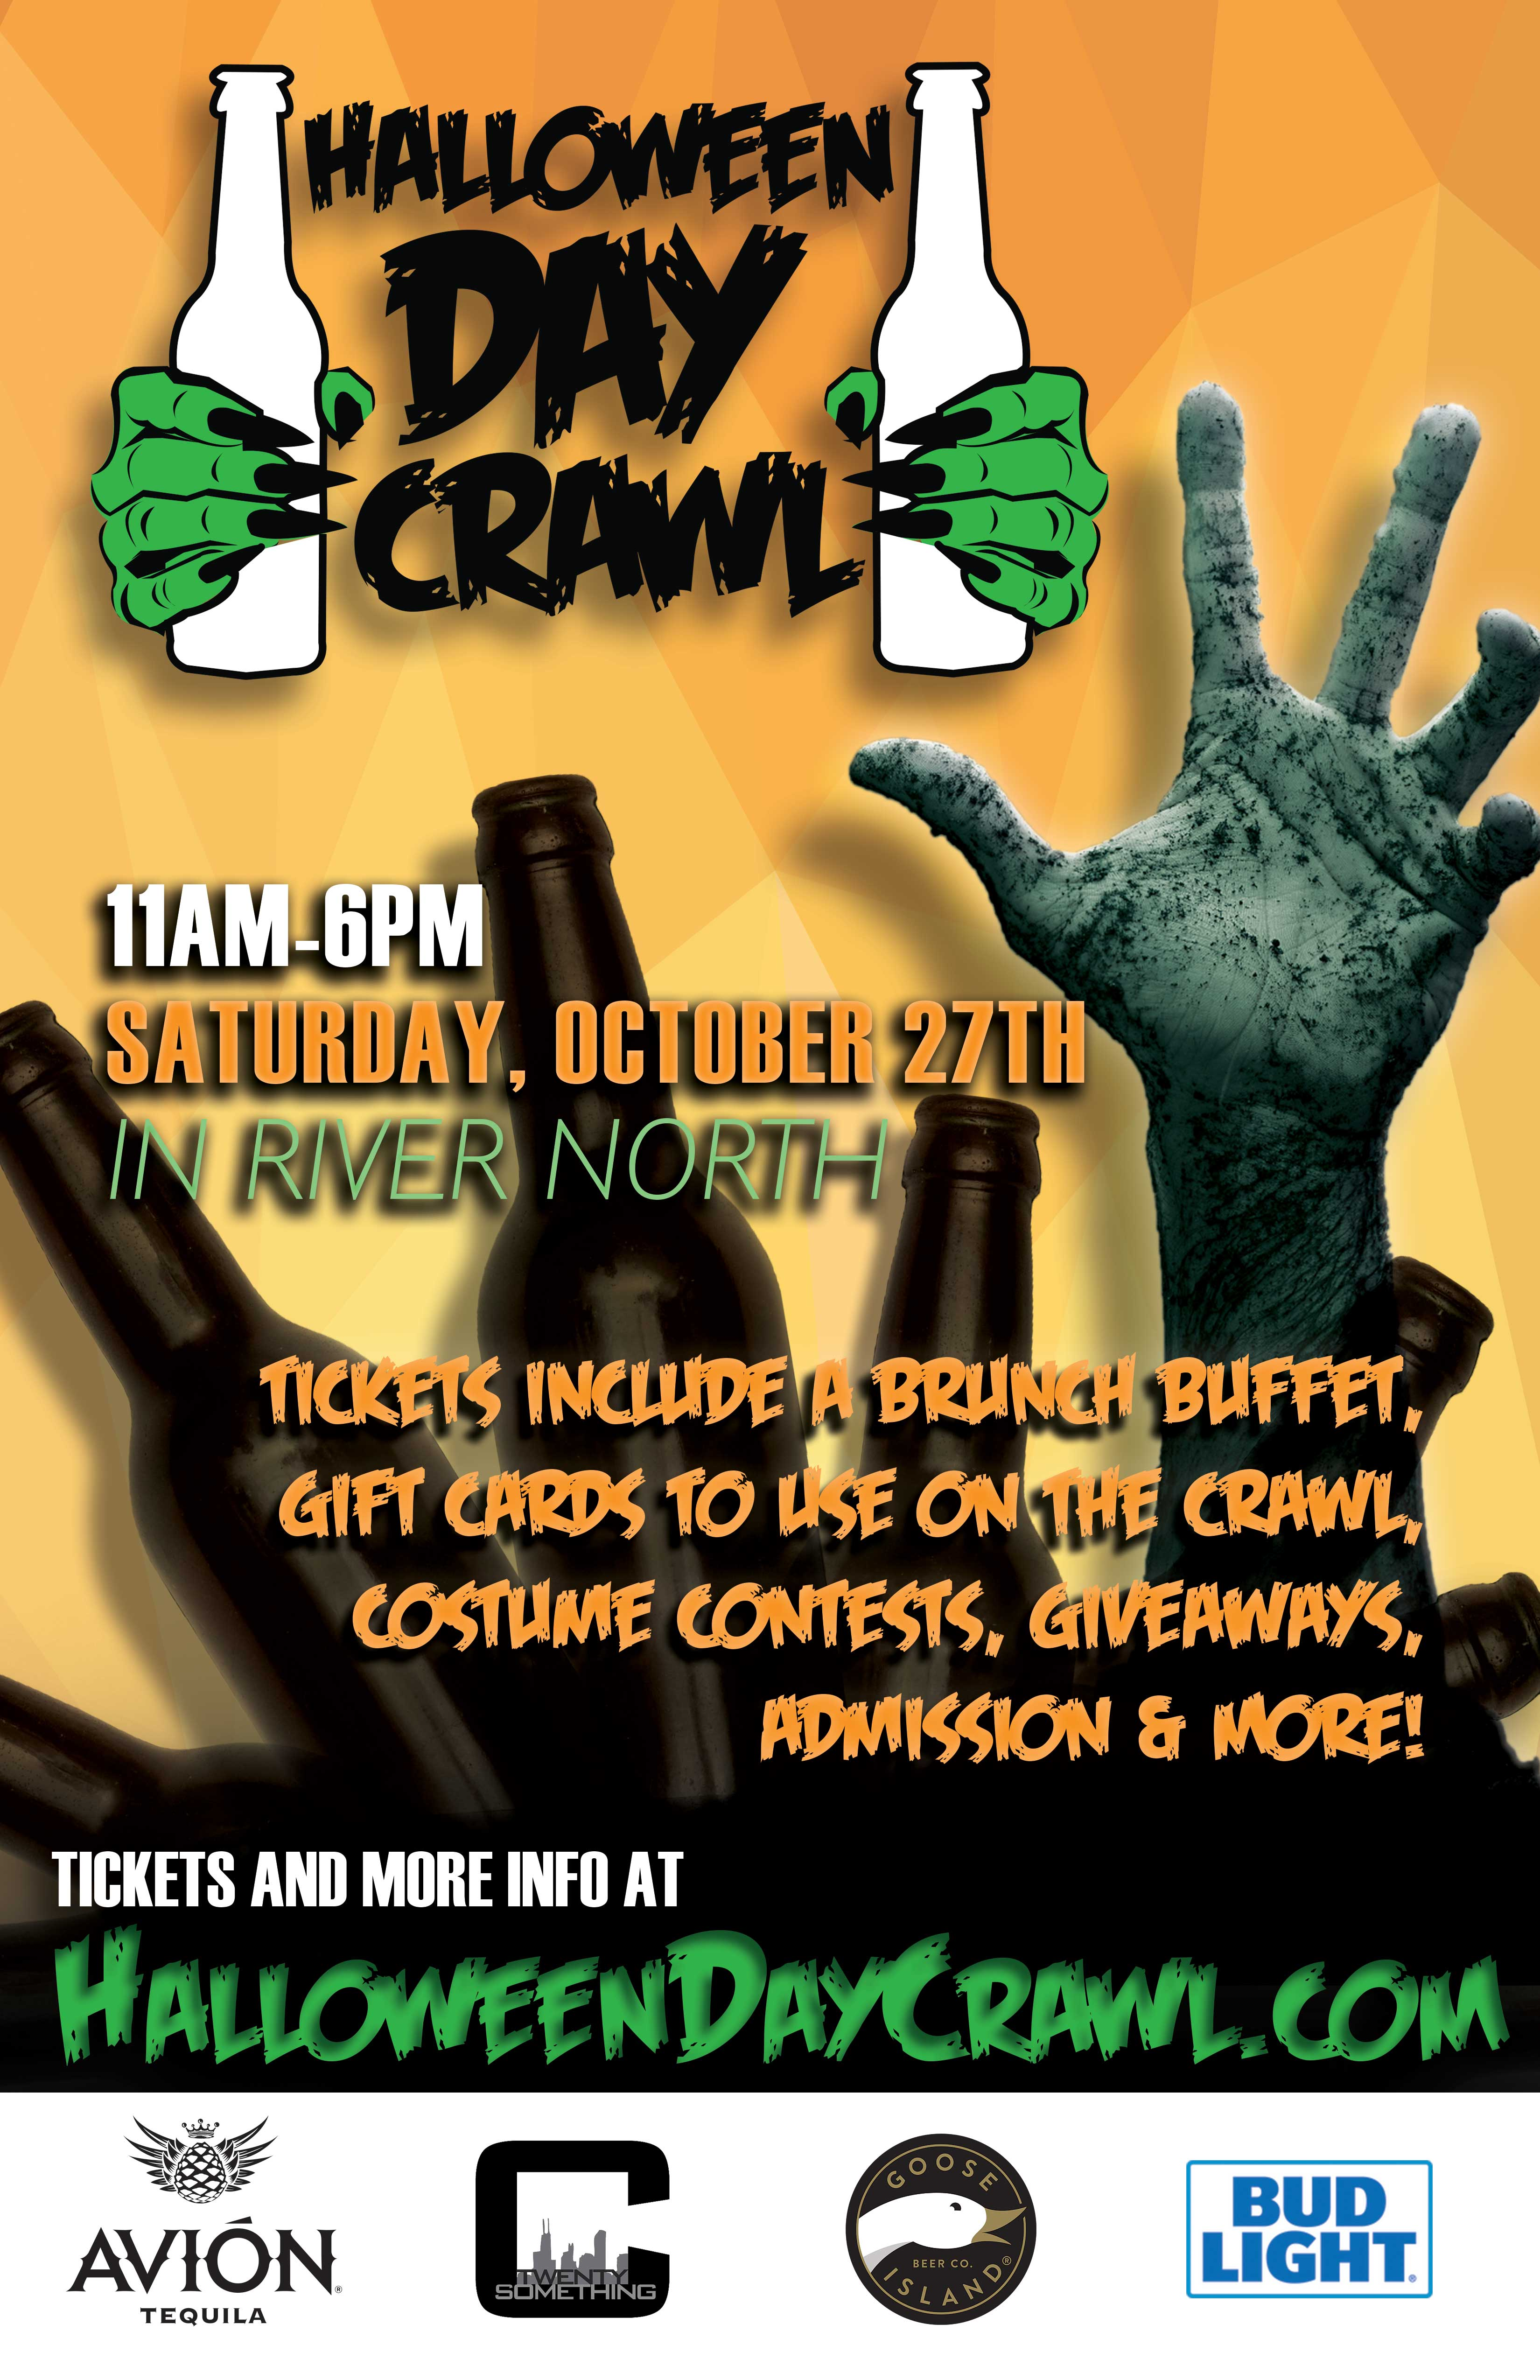 Halloween Day Bar Crawl in Chicago - Tickets include a brunch buffet, gift cards to use on the crawl, costume contests, giveaways, admission to all bars during their scheduled times & MORE!